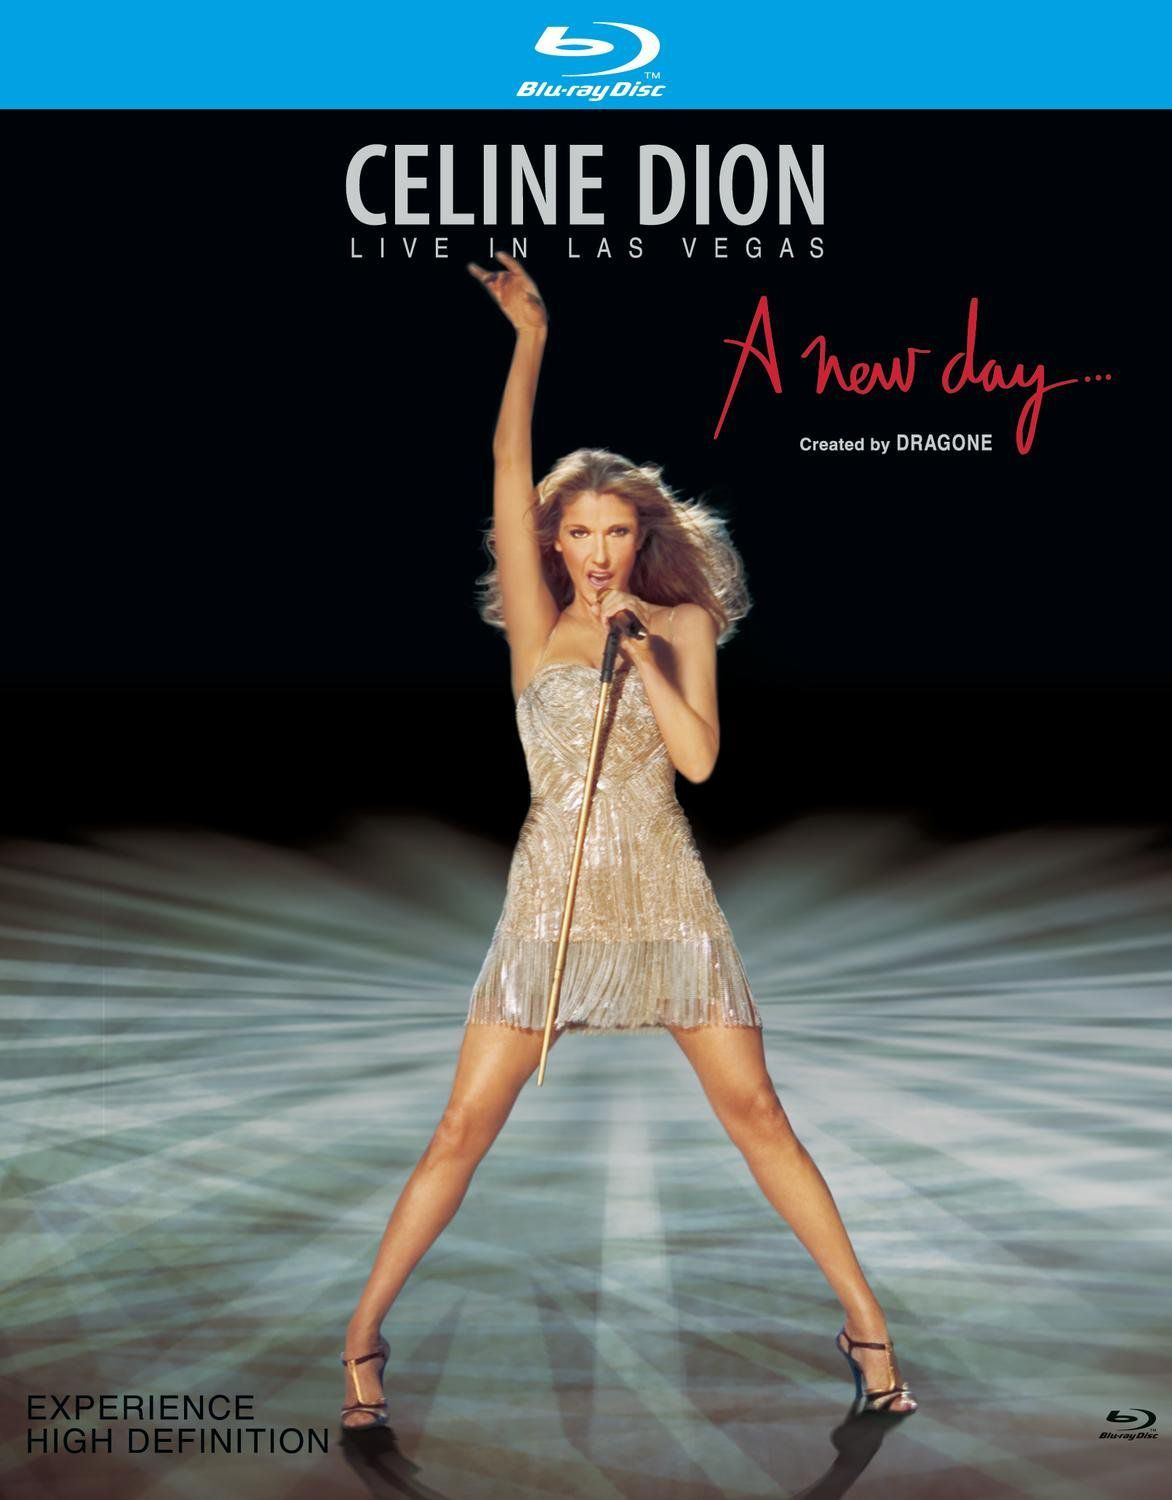 Celine Dion – Live in Las Vegas: A New Day